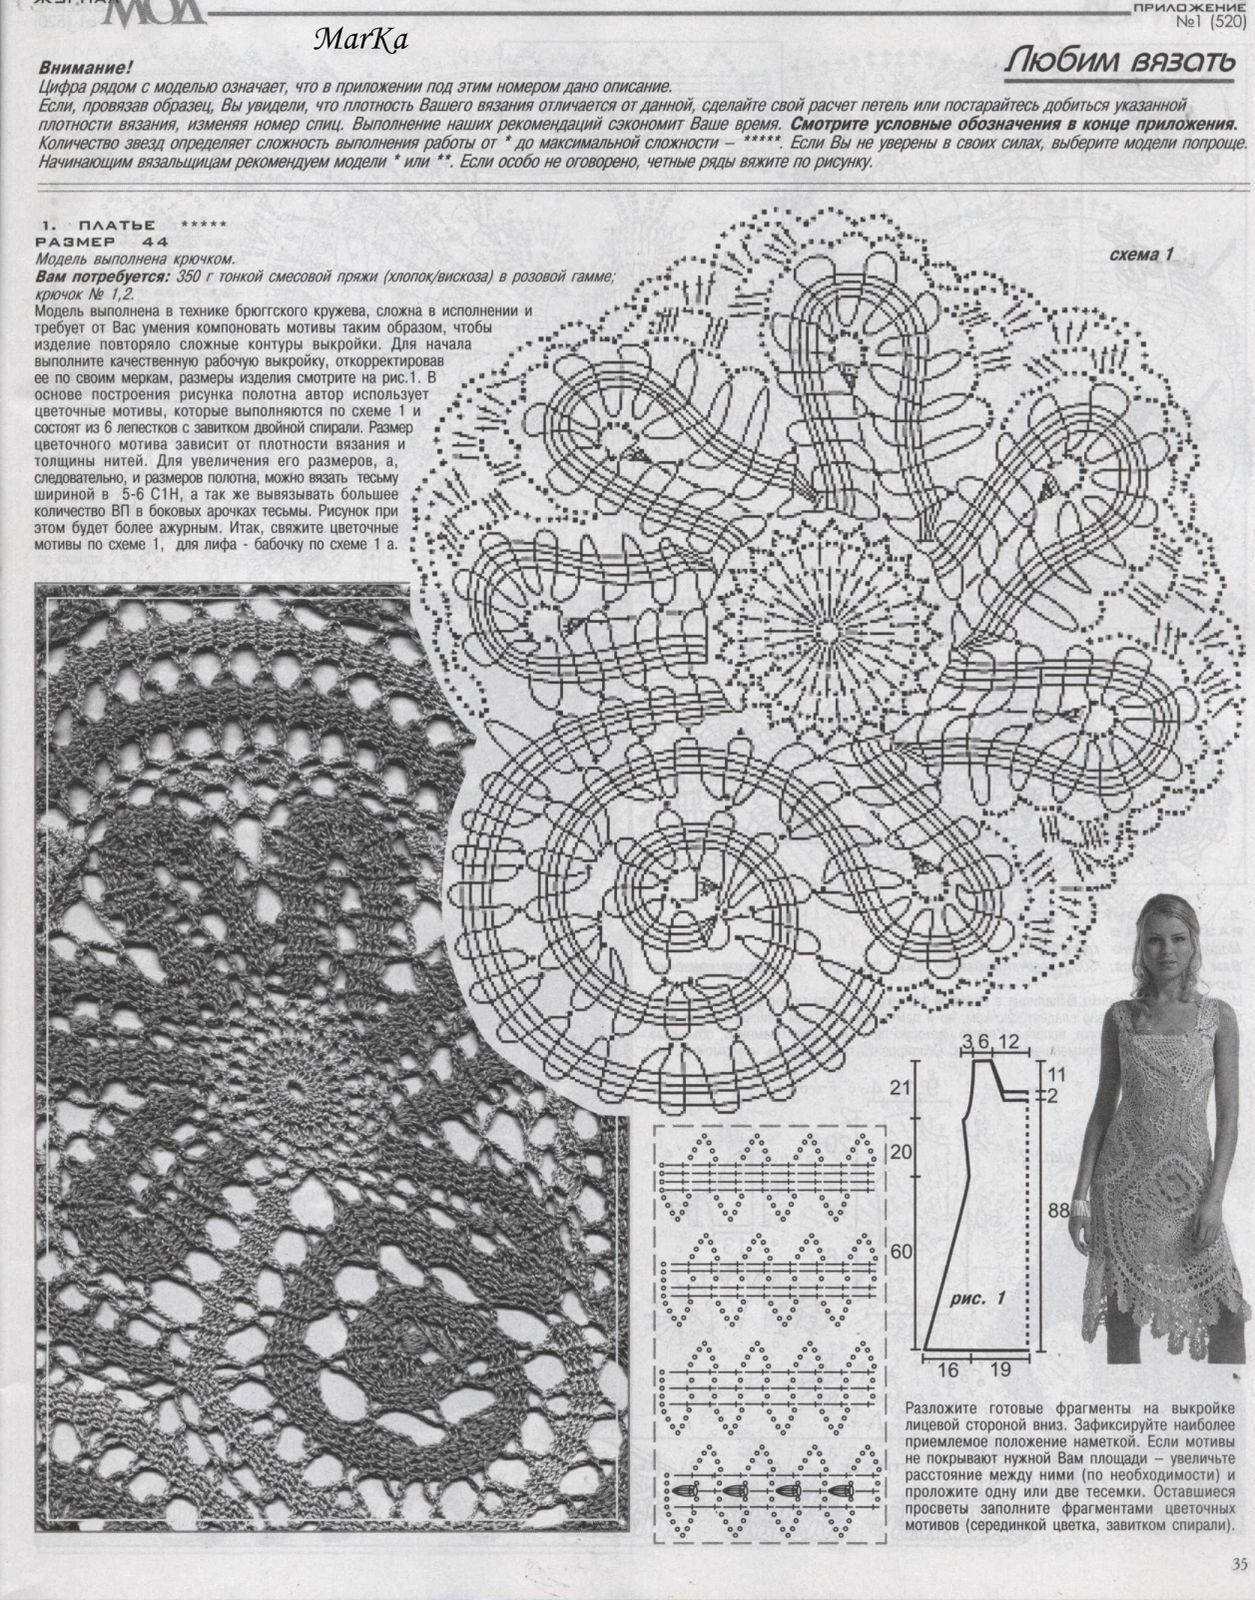 a very large bruges lace motif- a very organic shape- flowery & spiral-y  *dress pattern, zhurnal mod